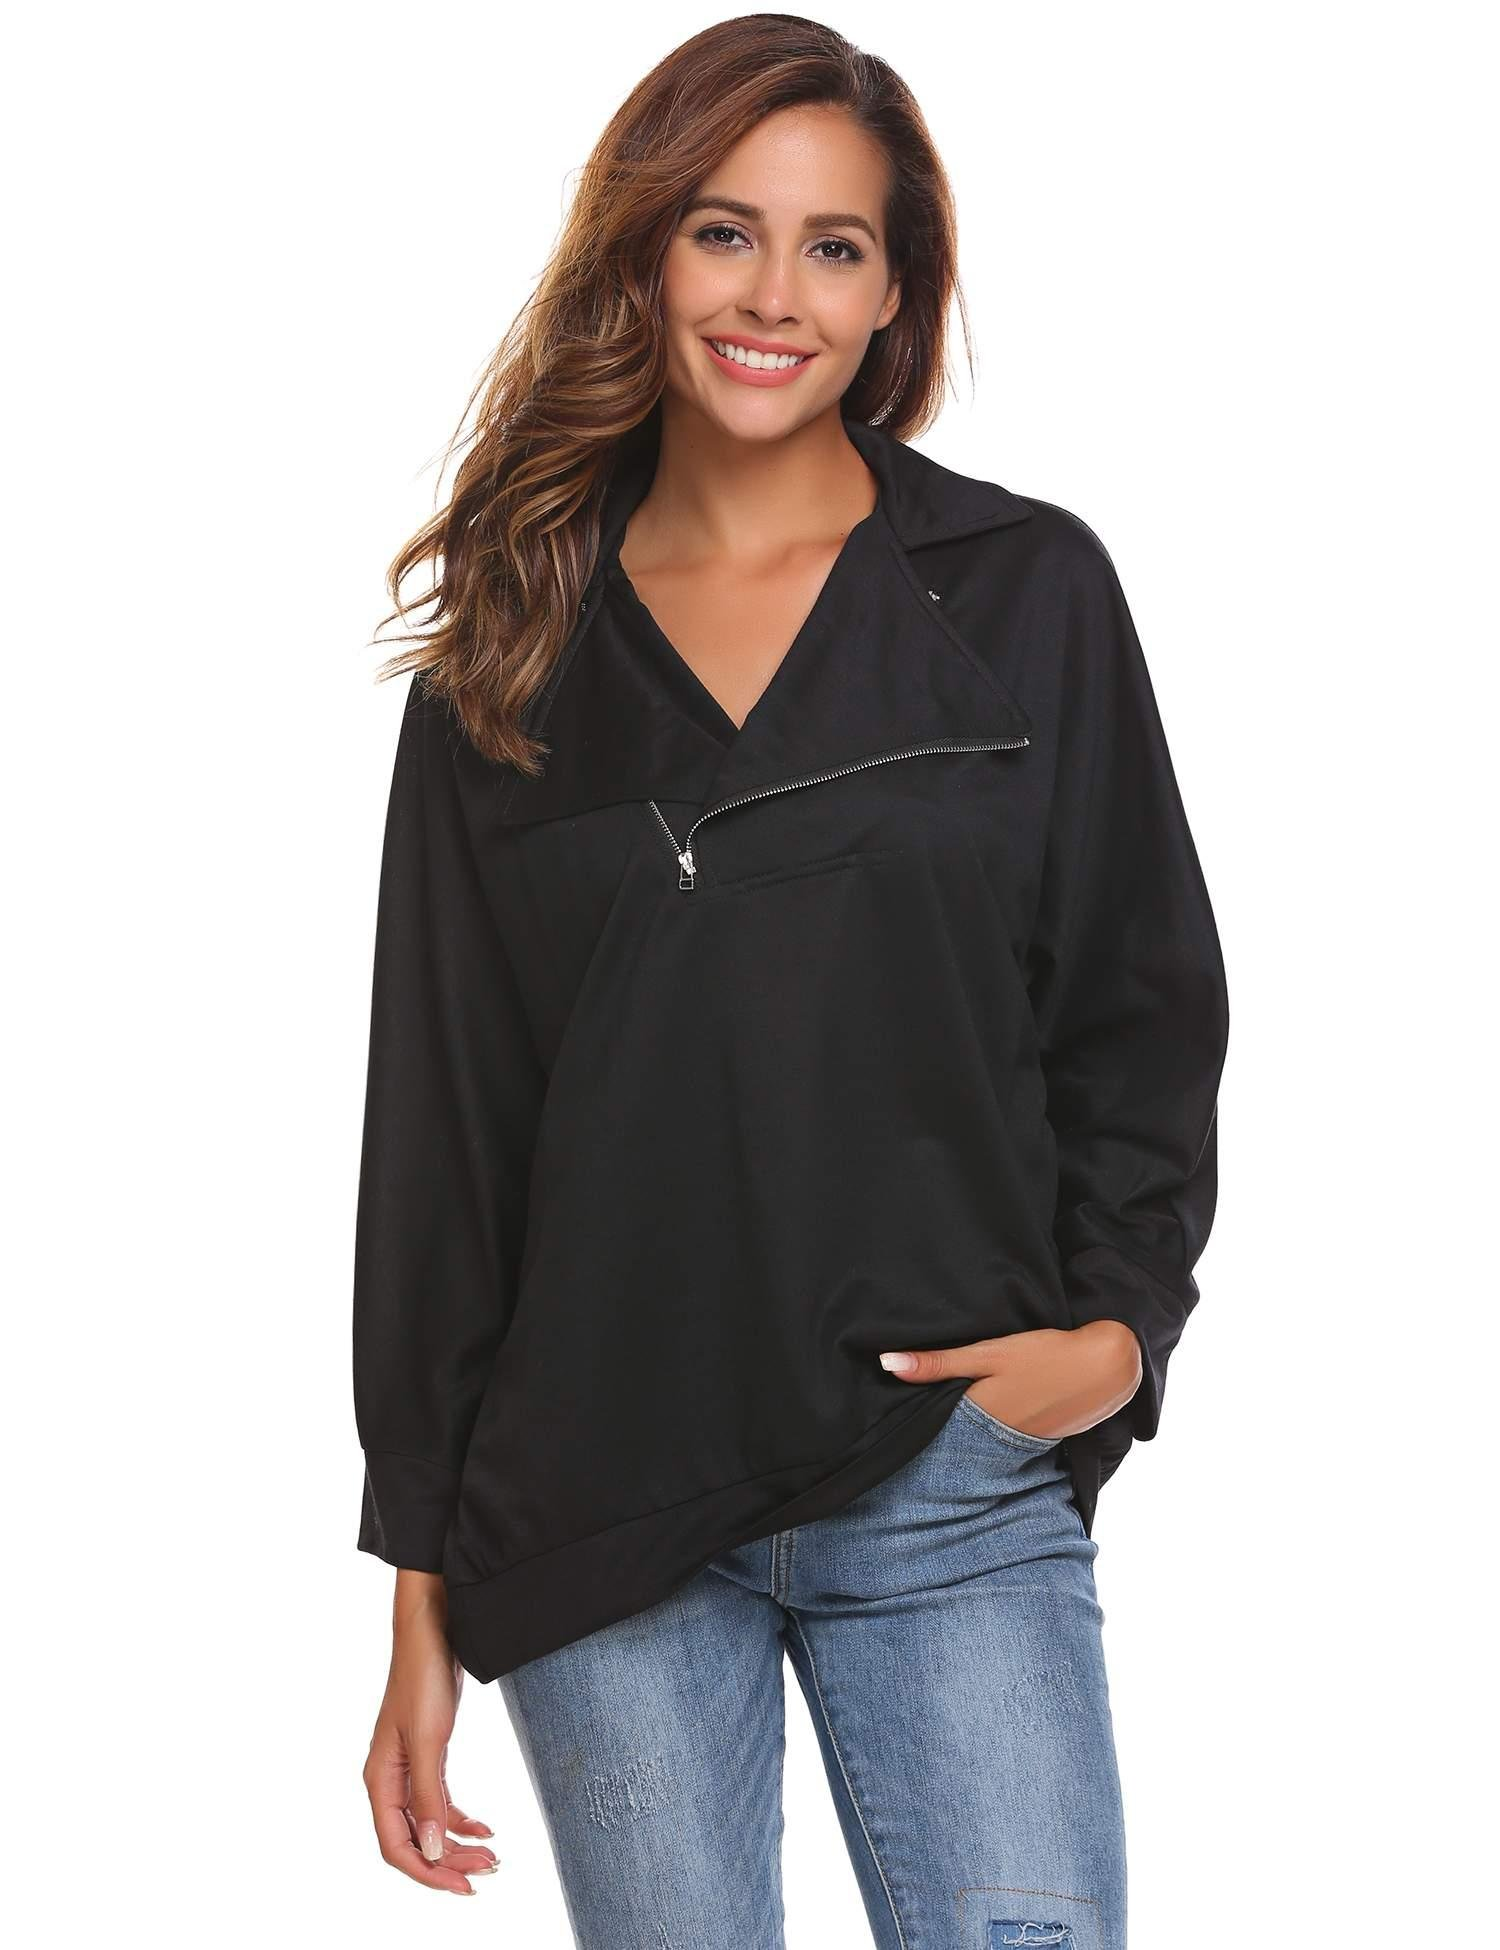 Zeagoo Women's Sexy Long Loose Sleeve Loose Pullover Casual Top Blouse T-Shirt Black XL